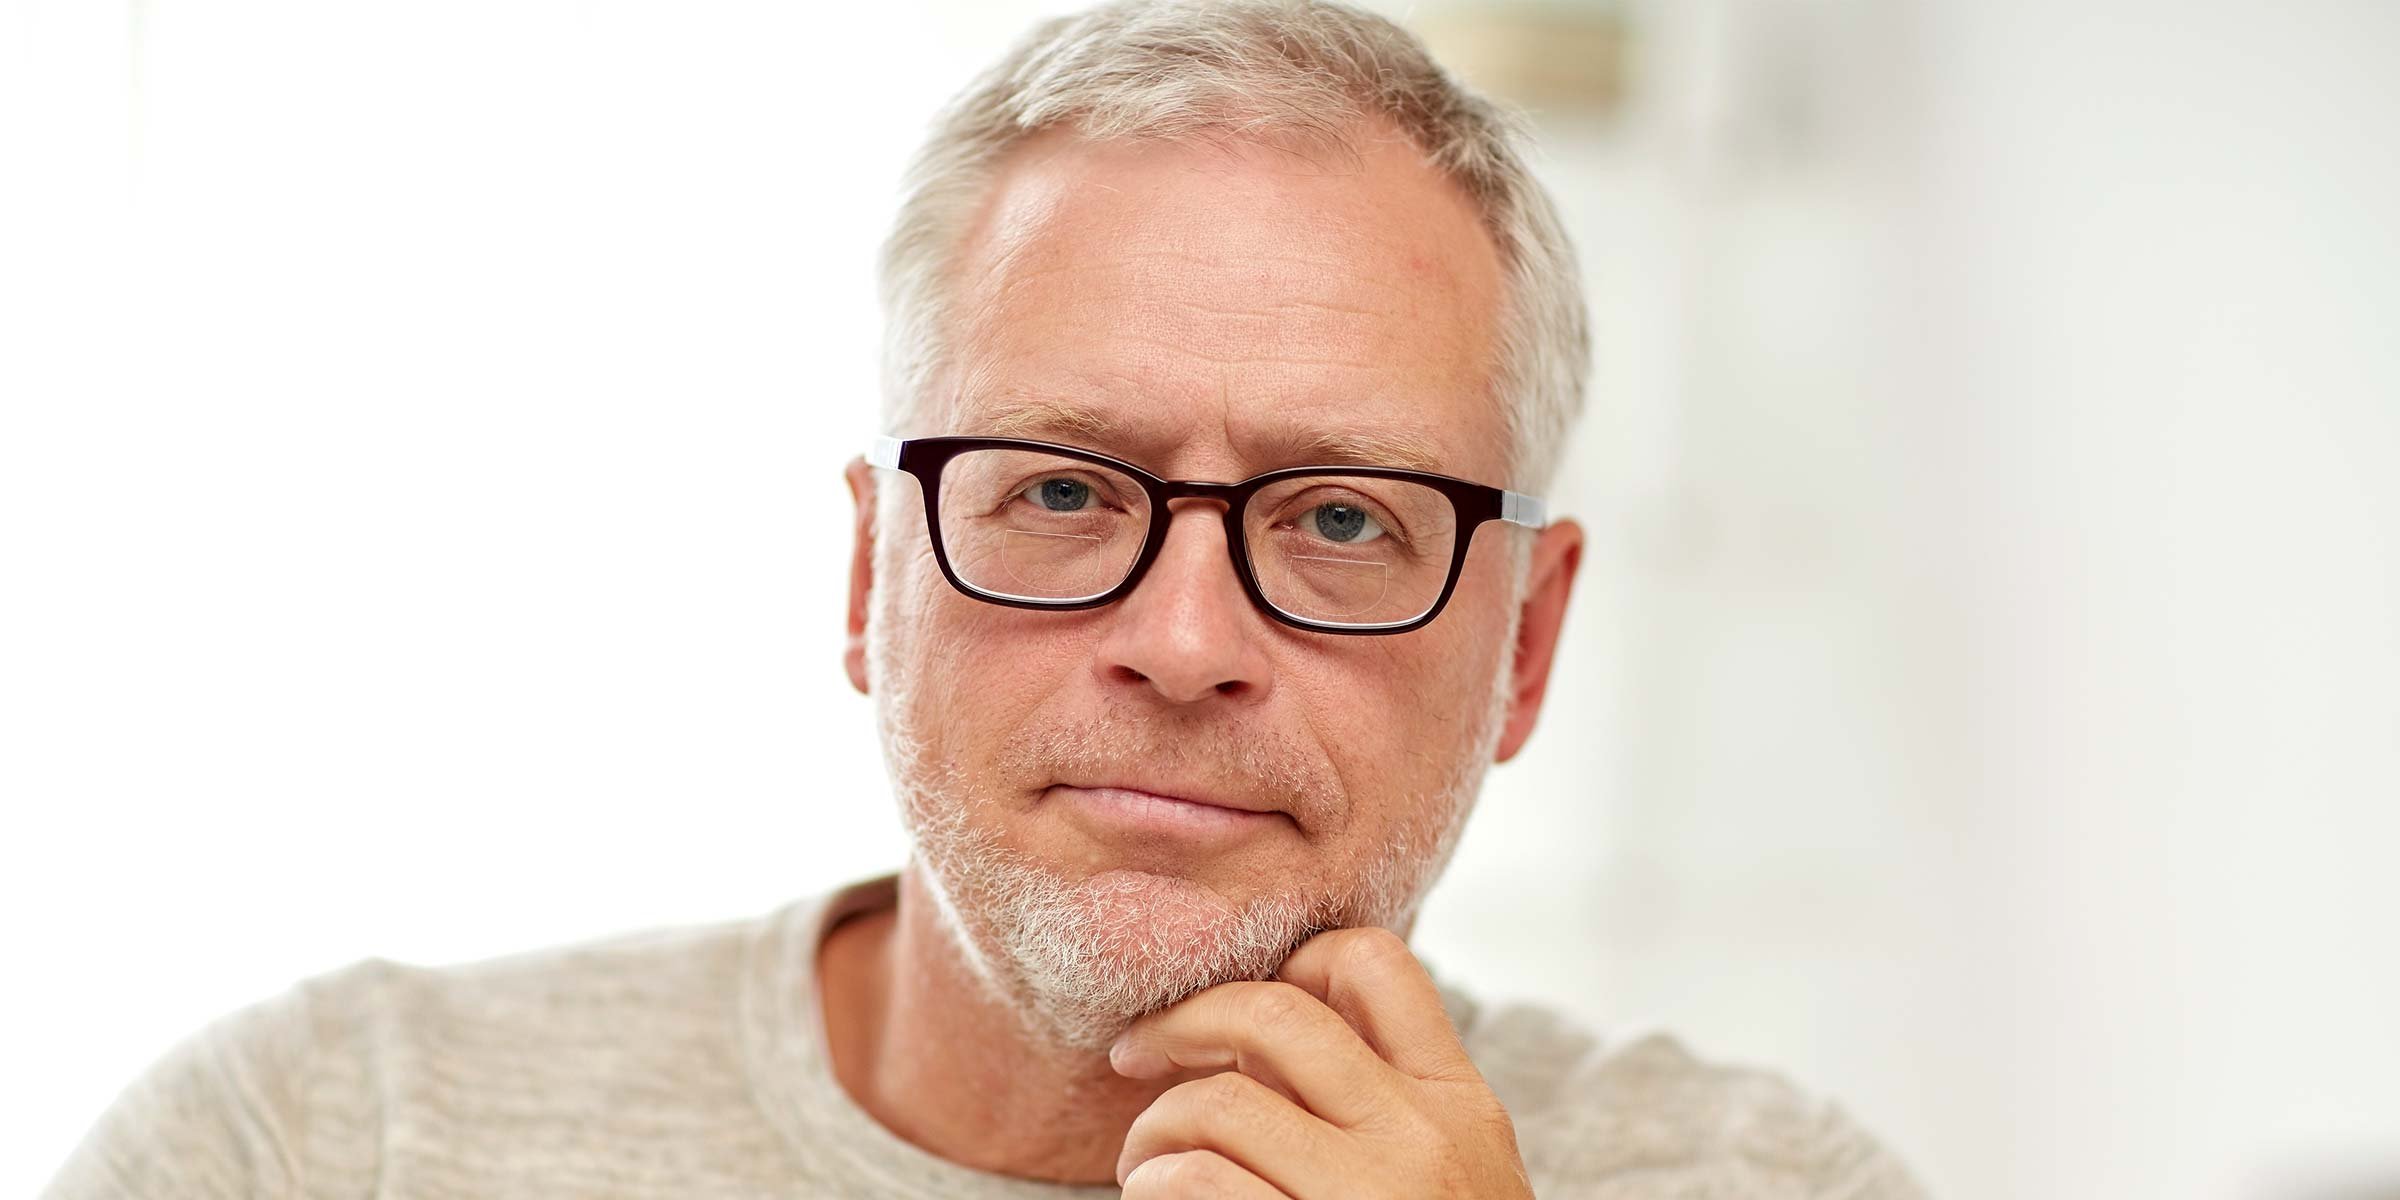 Middle-aged man wearing glasses with bifocal lenses